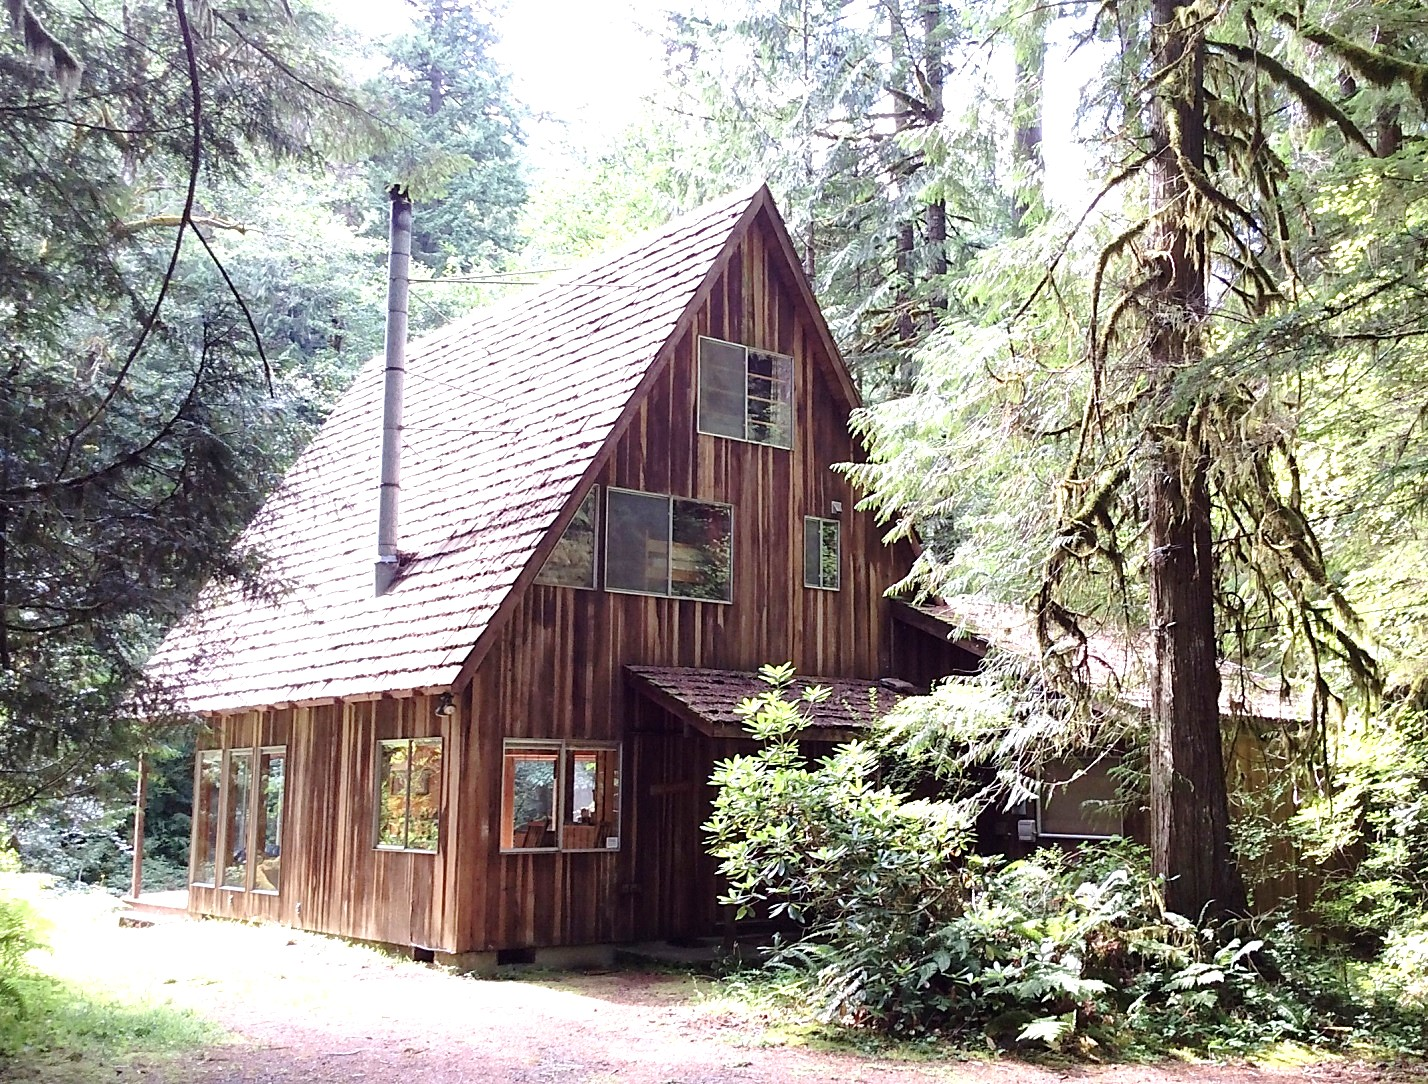 mt resorts forrest oregon rentals hood mount vacation top cabins zigzag header lodge near lodges